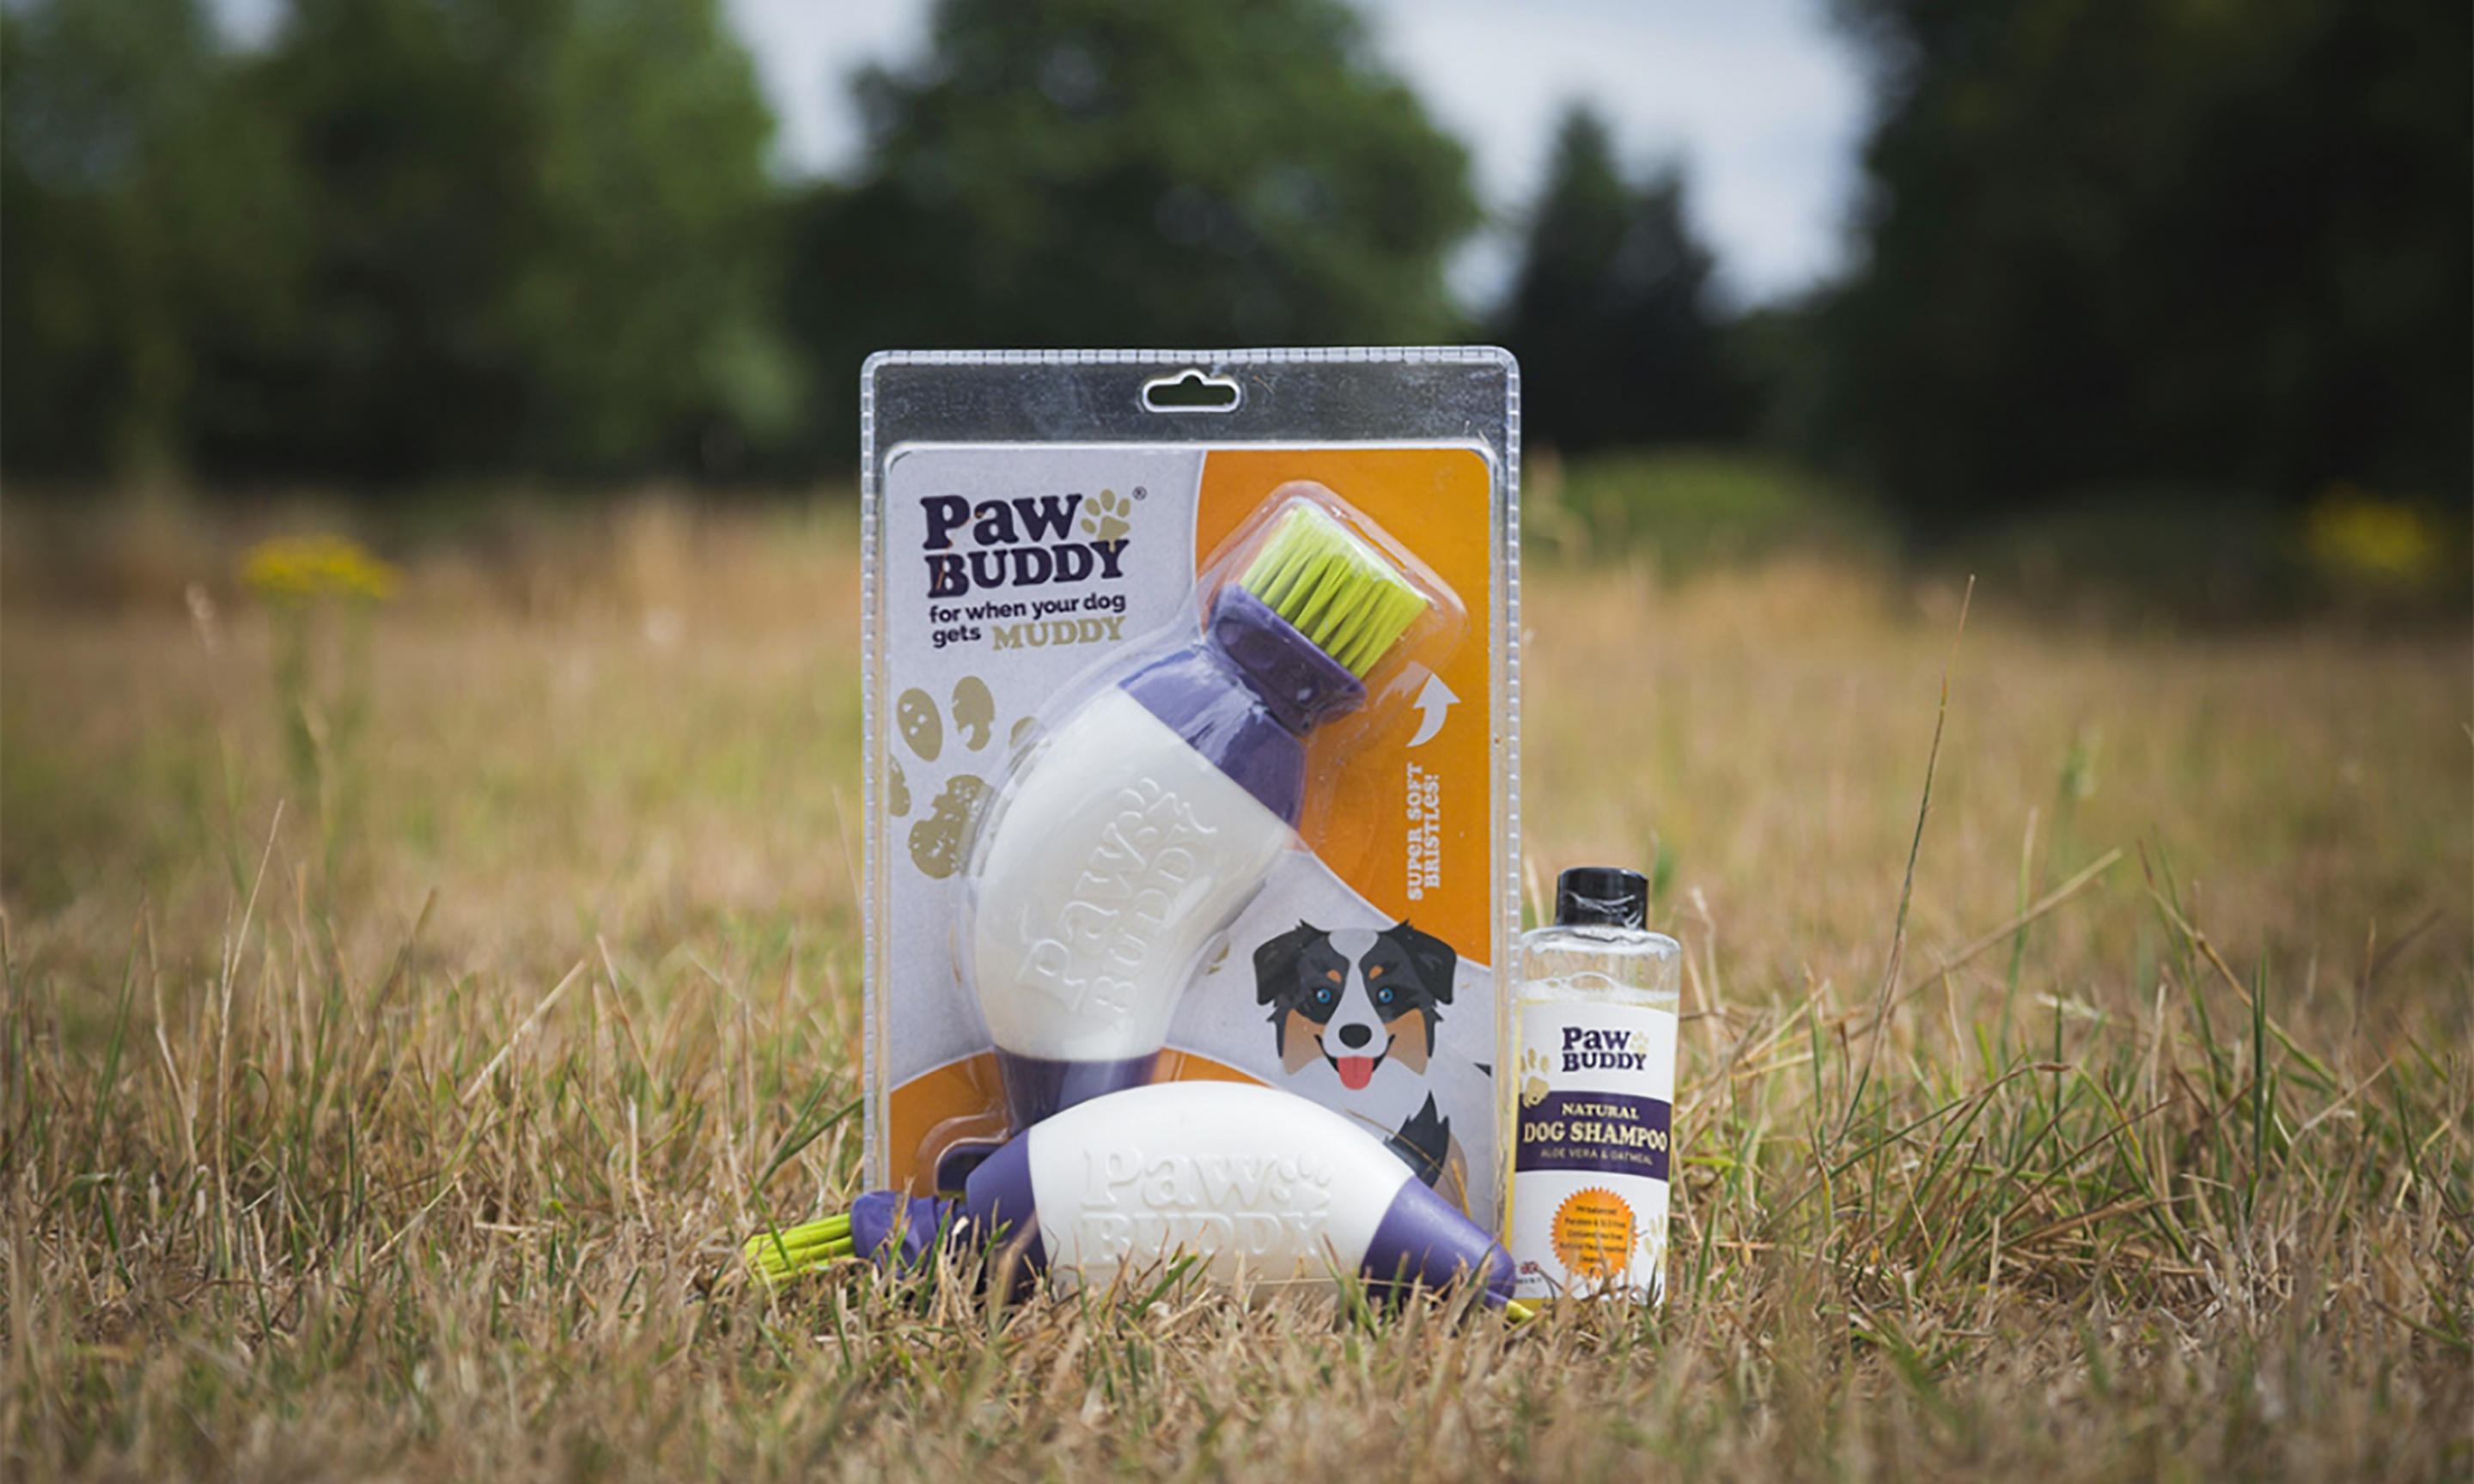 Paw Buddy Packaging Design Photograph in Field